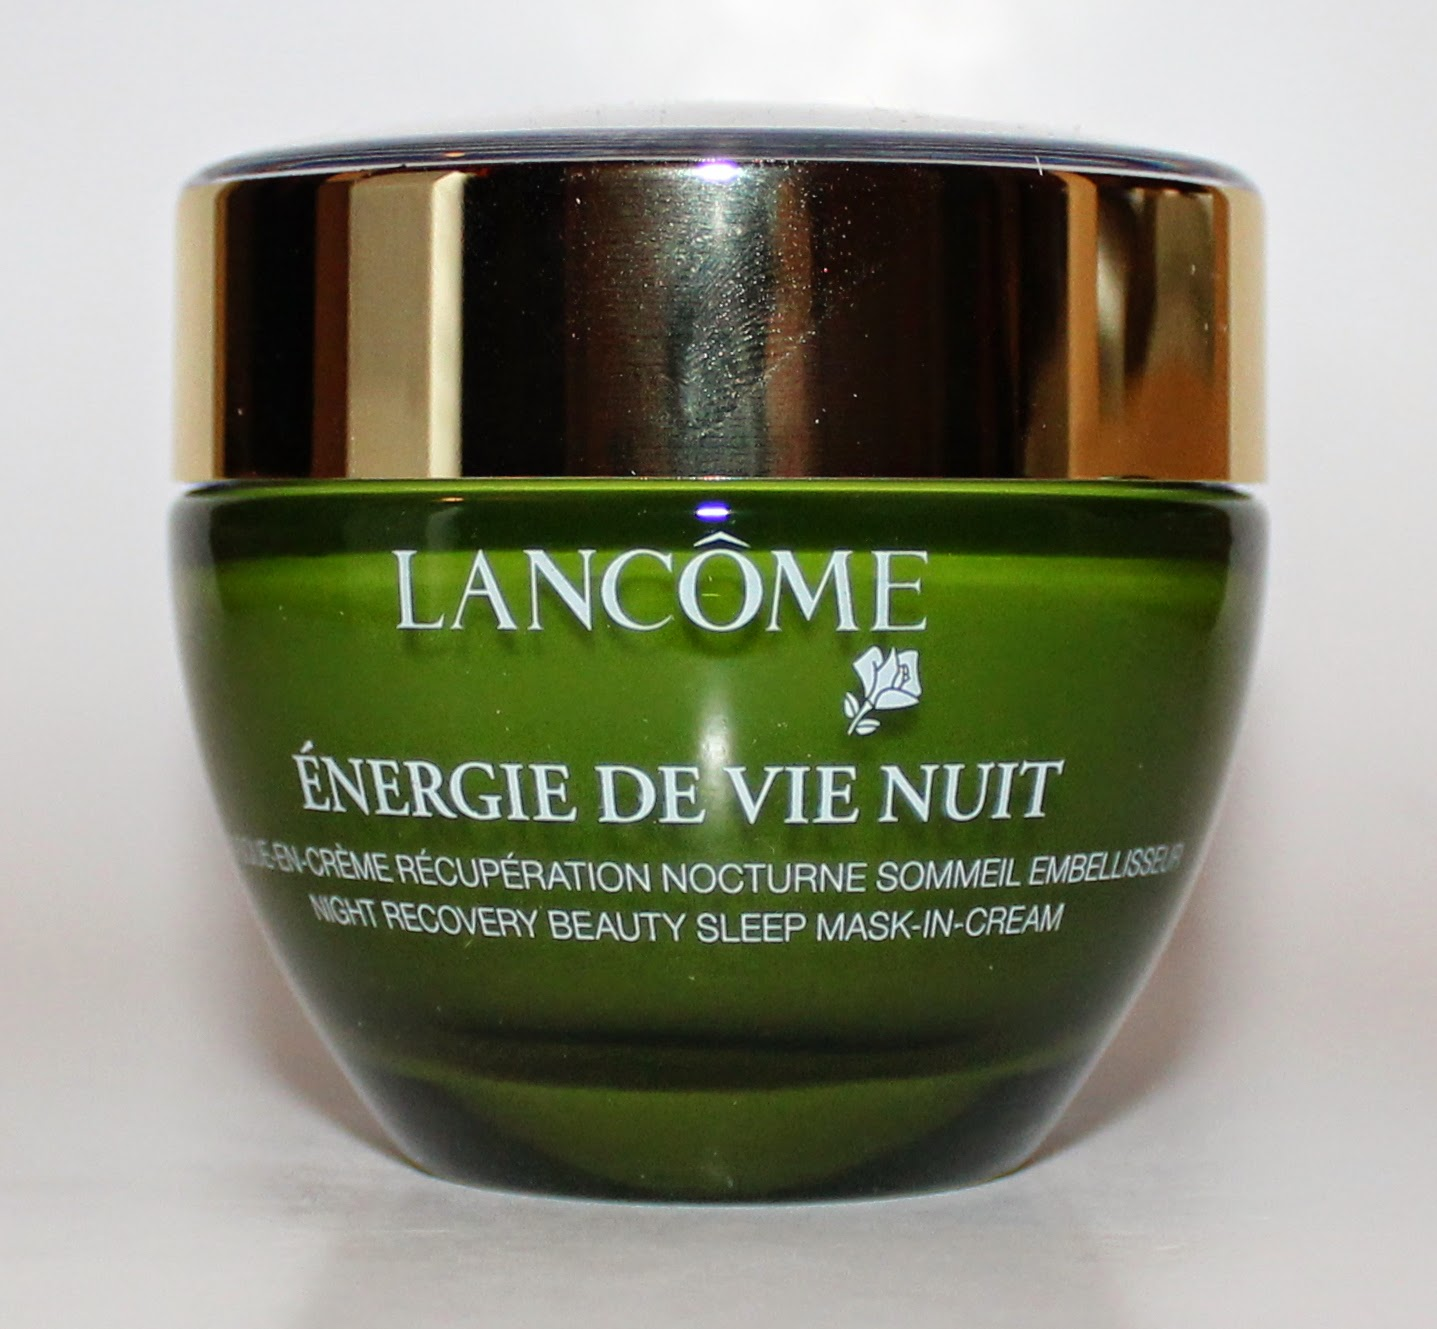 Lancôme Energie de Vie Nuit Overnight Recovery Mask